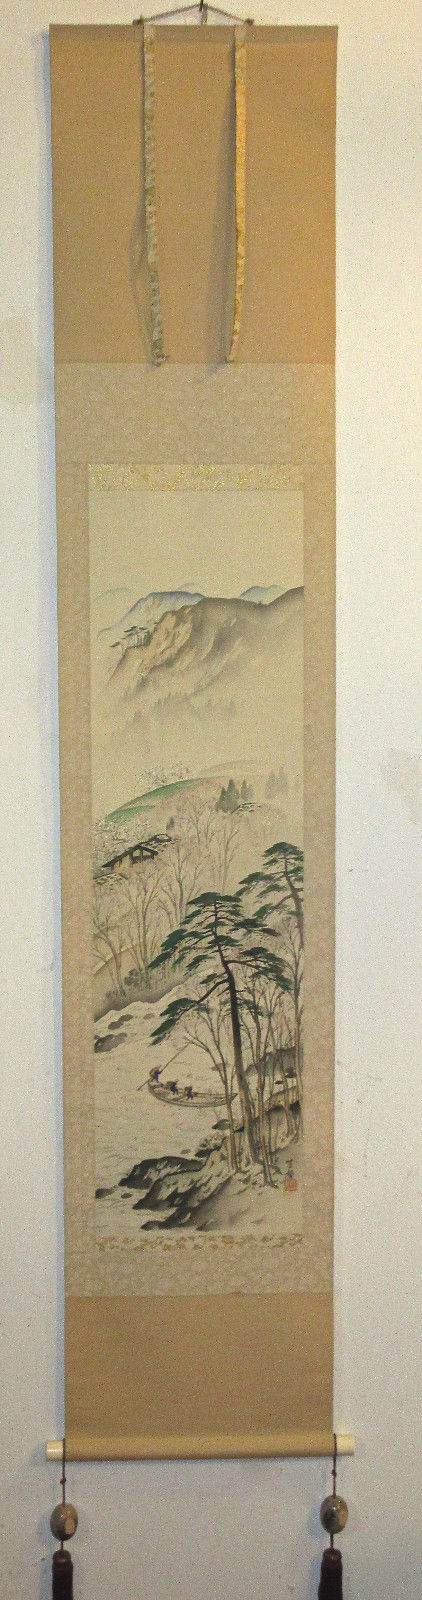 CHINESE SCROLL 3 FISHERMEN IN BOAT MOUTAIN RIVER SCENERY SIGNED & RED SEAL EUC